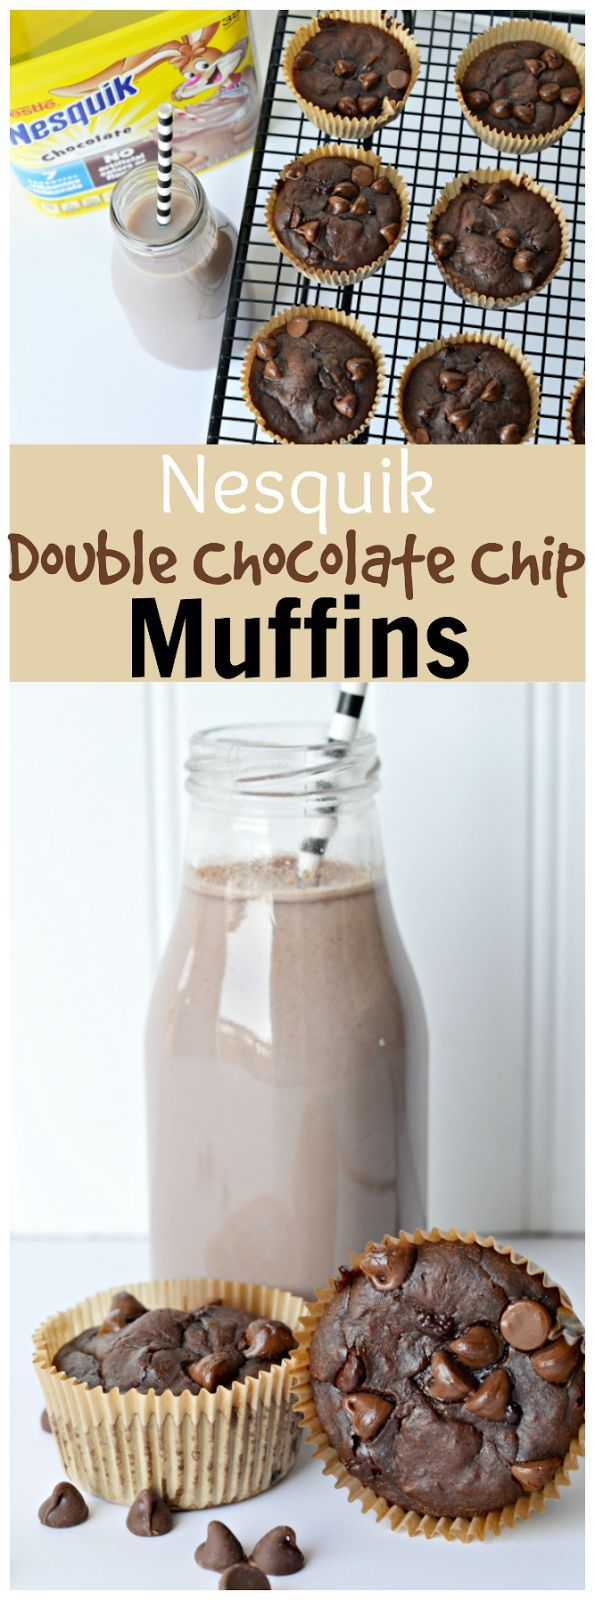 Best 25+ Double chocolate chip muffins ideas on Pinterest | Double ...